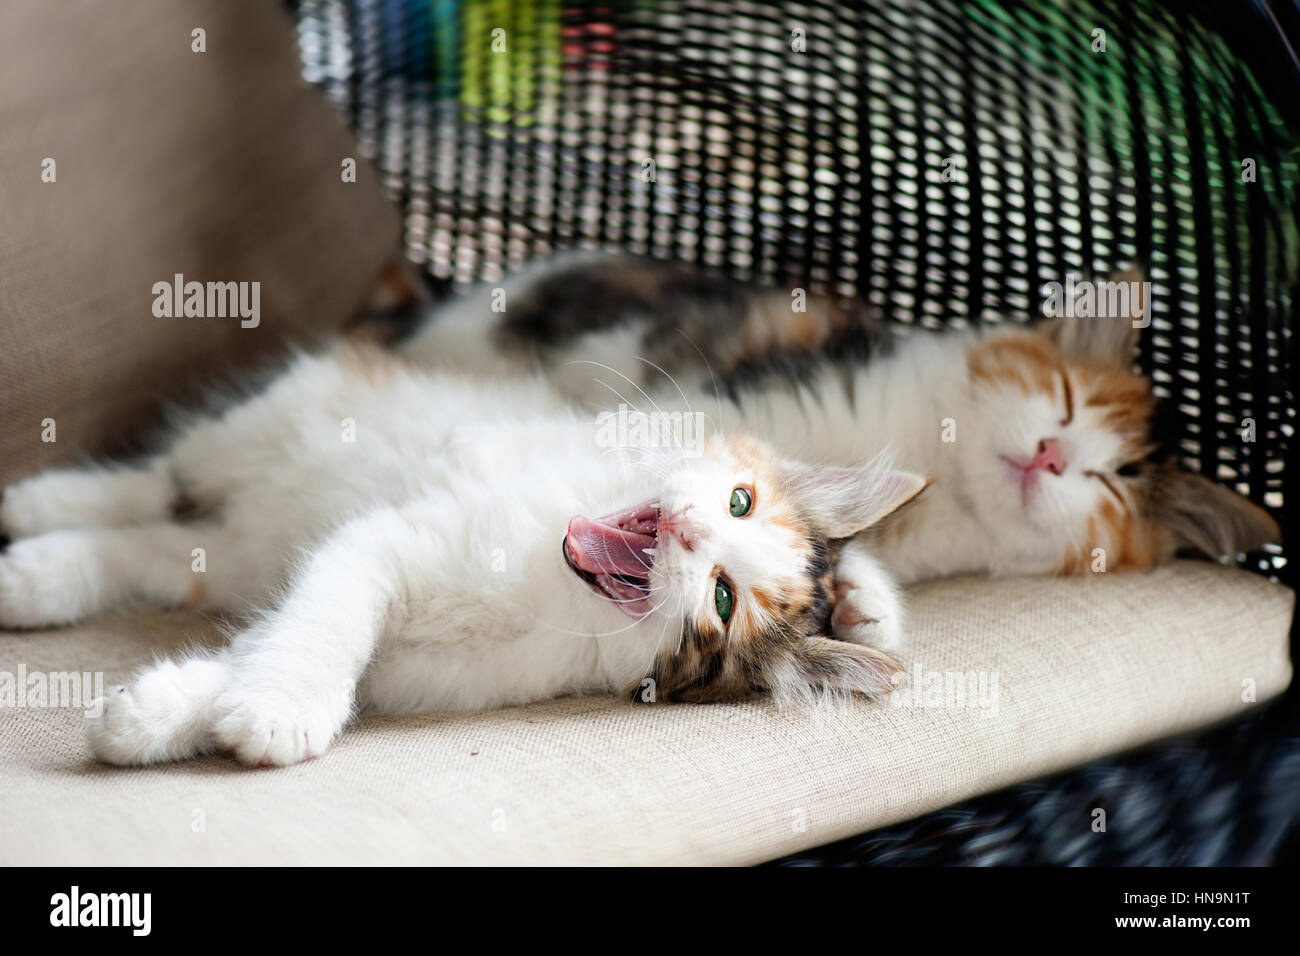 Sleep and sleepy kitten Stock Photo